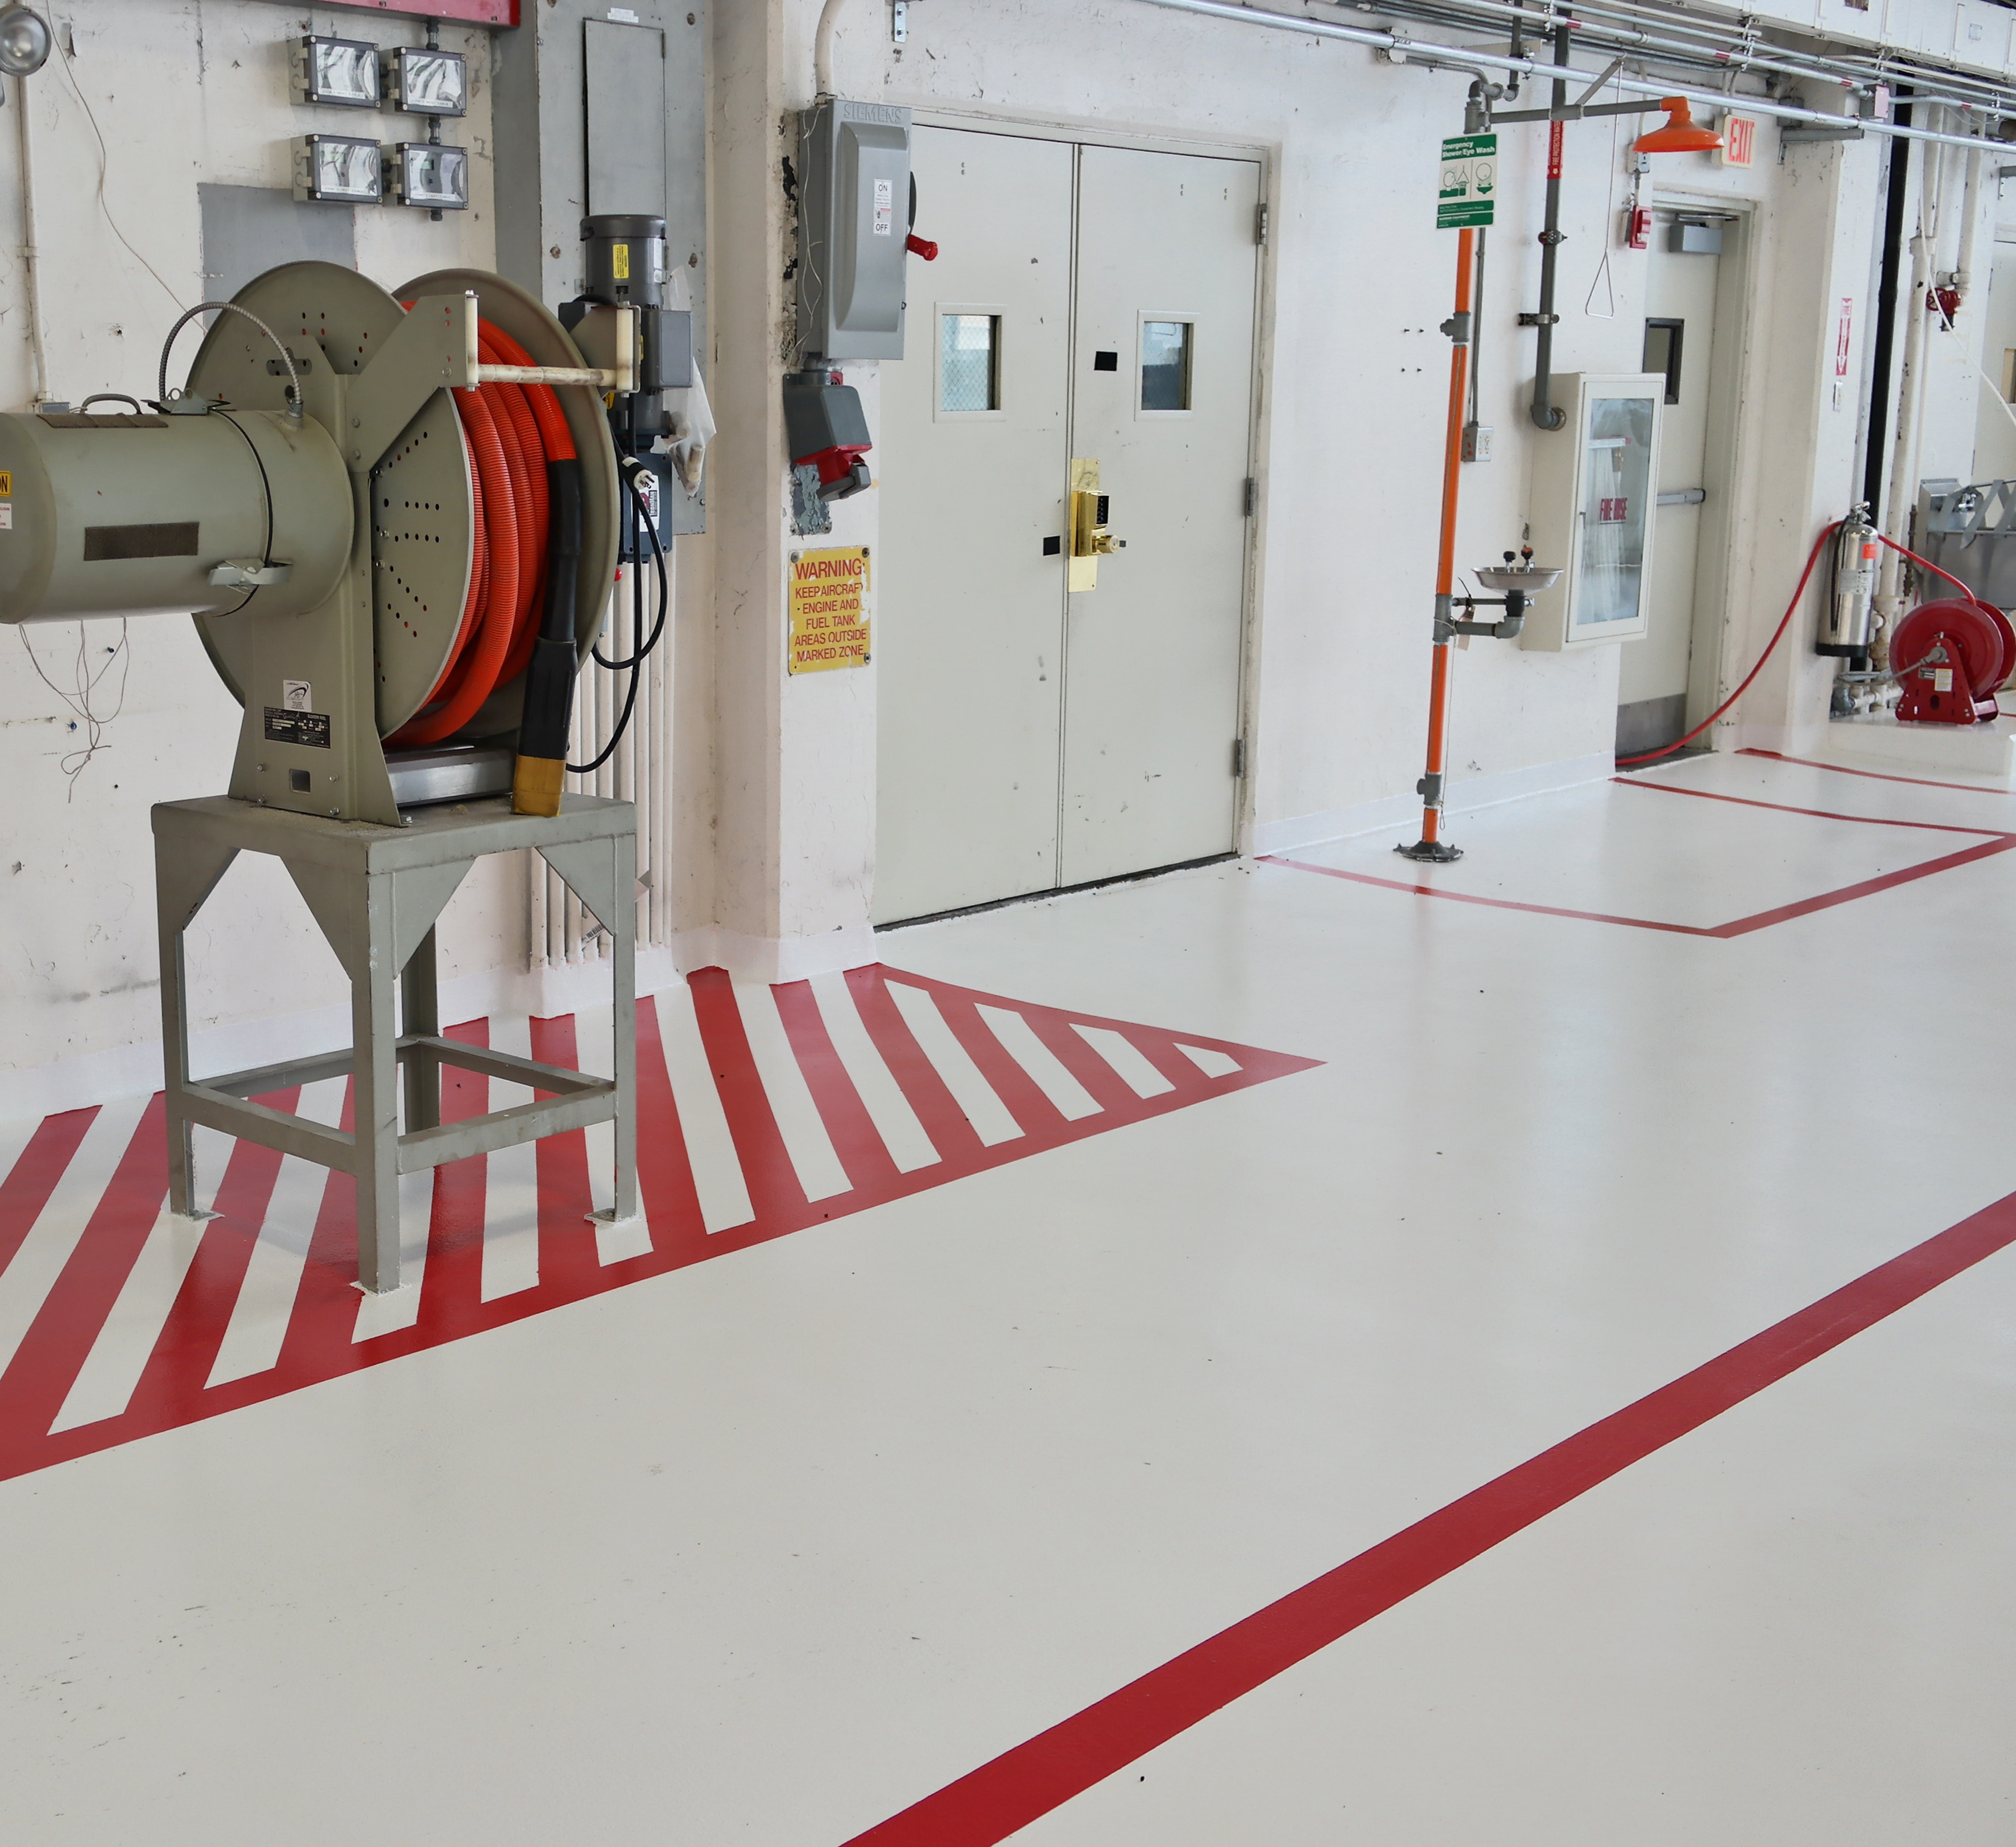 From surface prep, to application, it takes more than you may think to deliver a quality epoxy coated floor that will last for years to come.  epoxy floor coatings vs. epoxy paint: just how different are they Epoxy Floor Coatings vs. Epoxy Paint: Just How Different Are They? IMG 2280